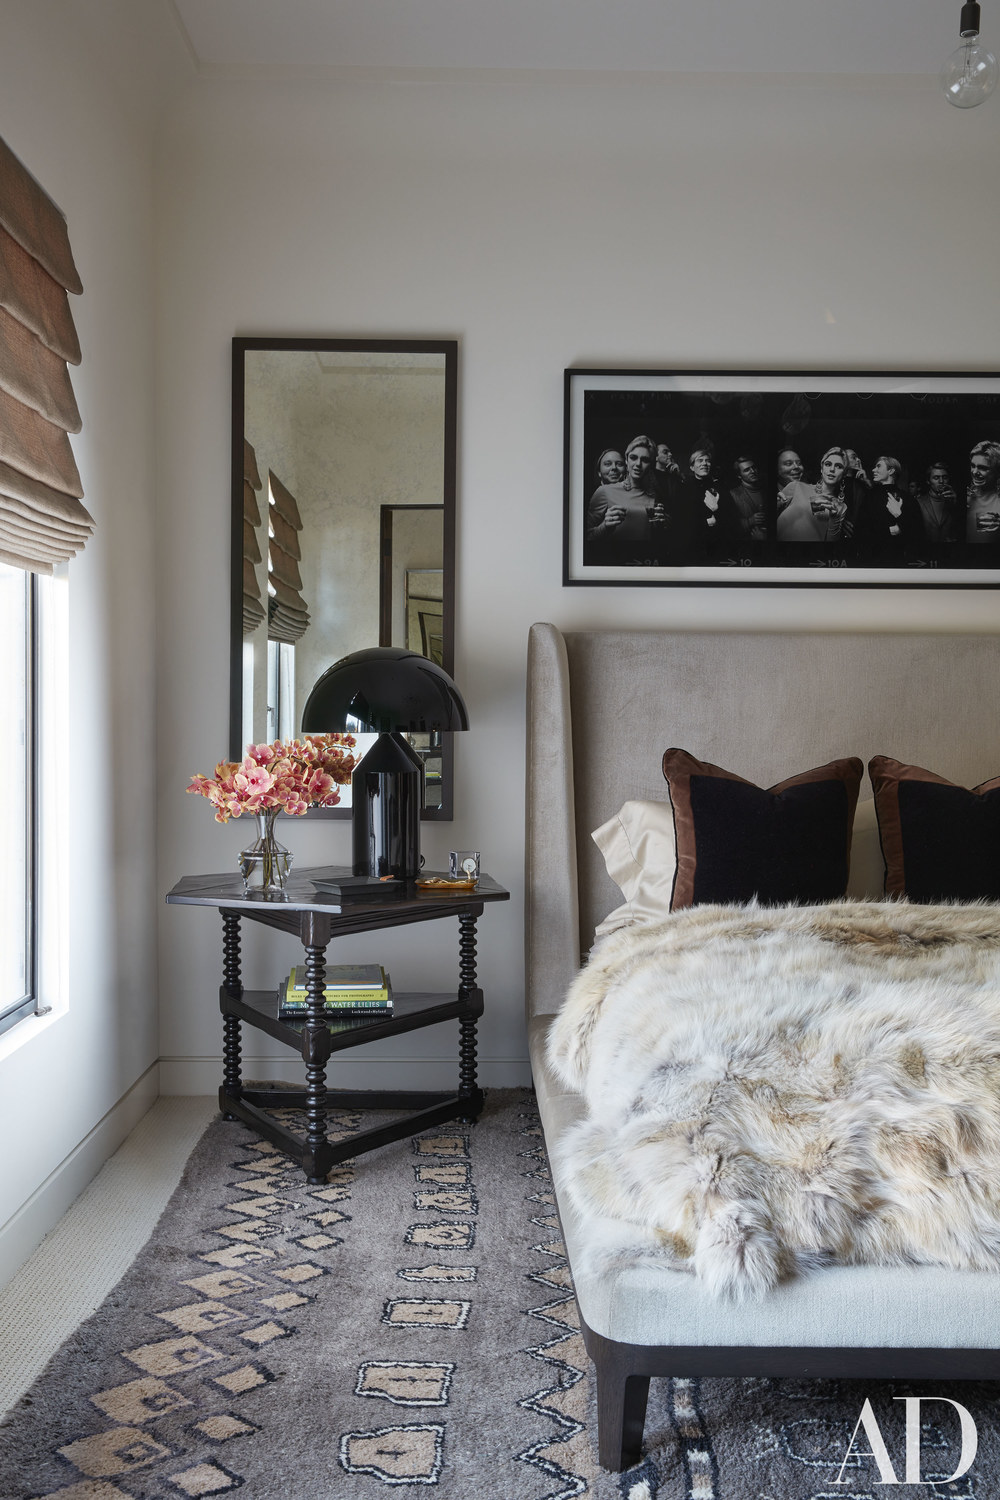 One of Kourtney's Guest Rooms